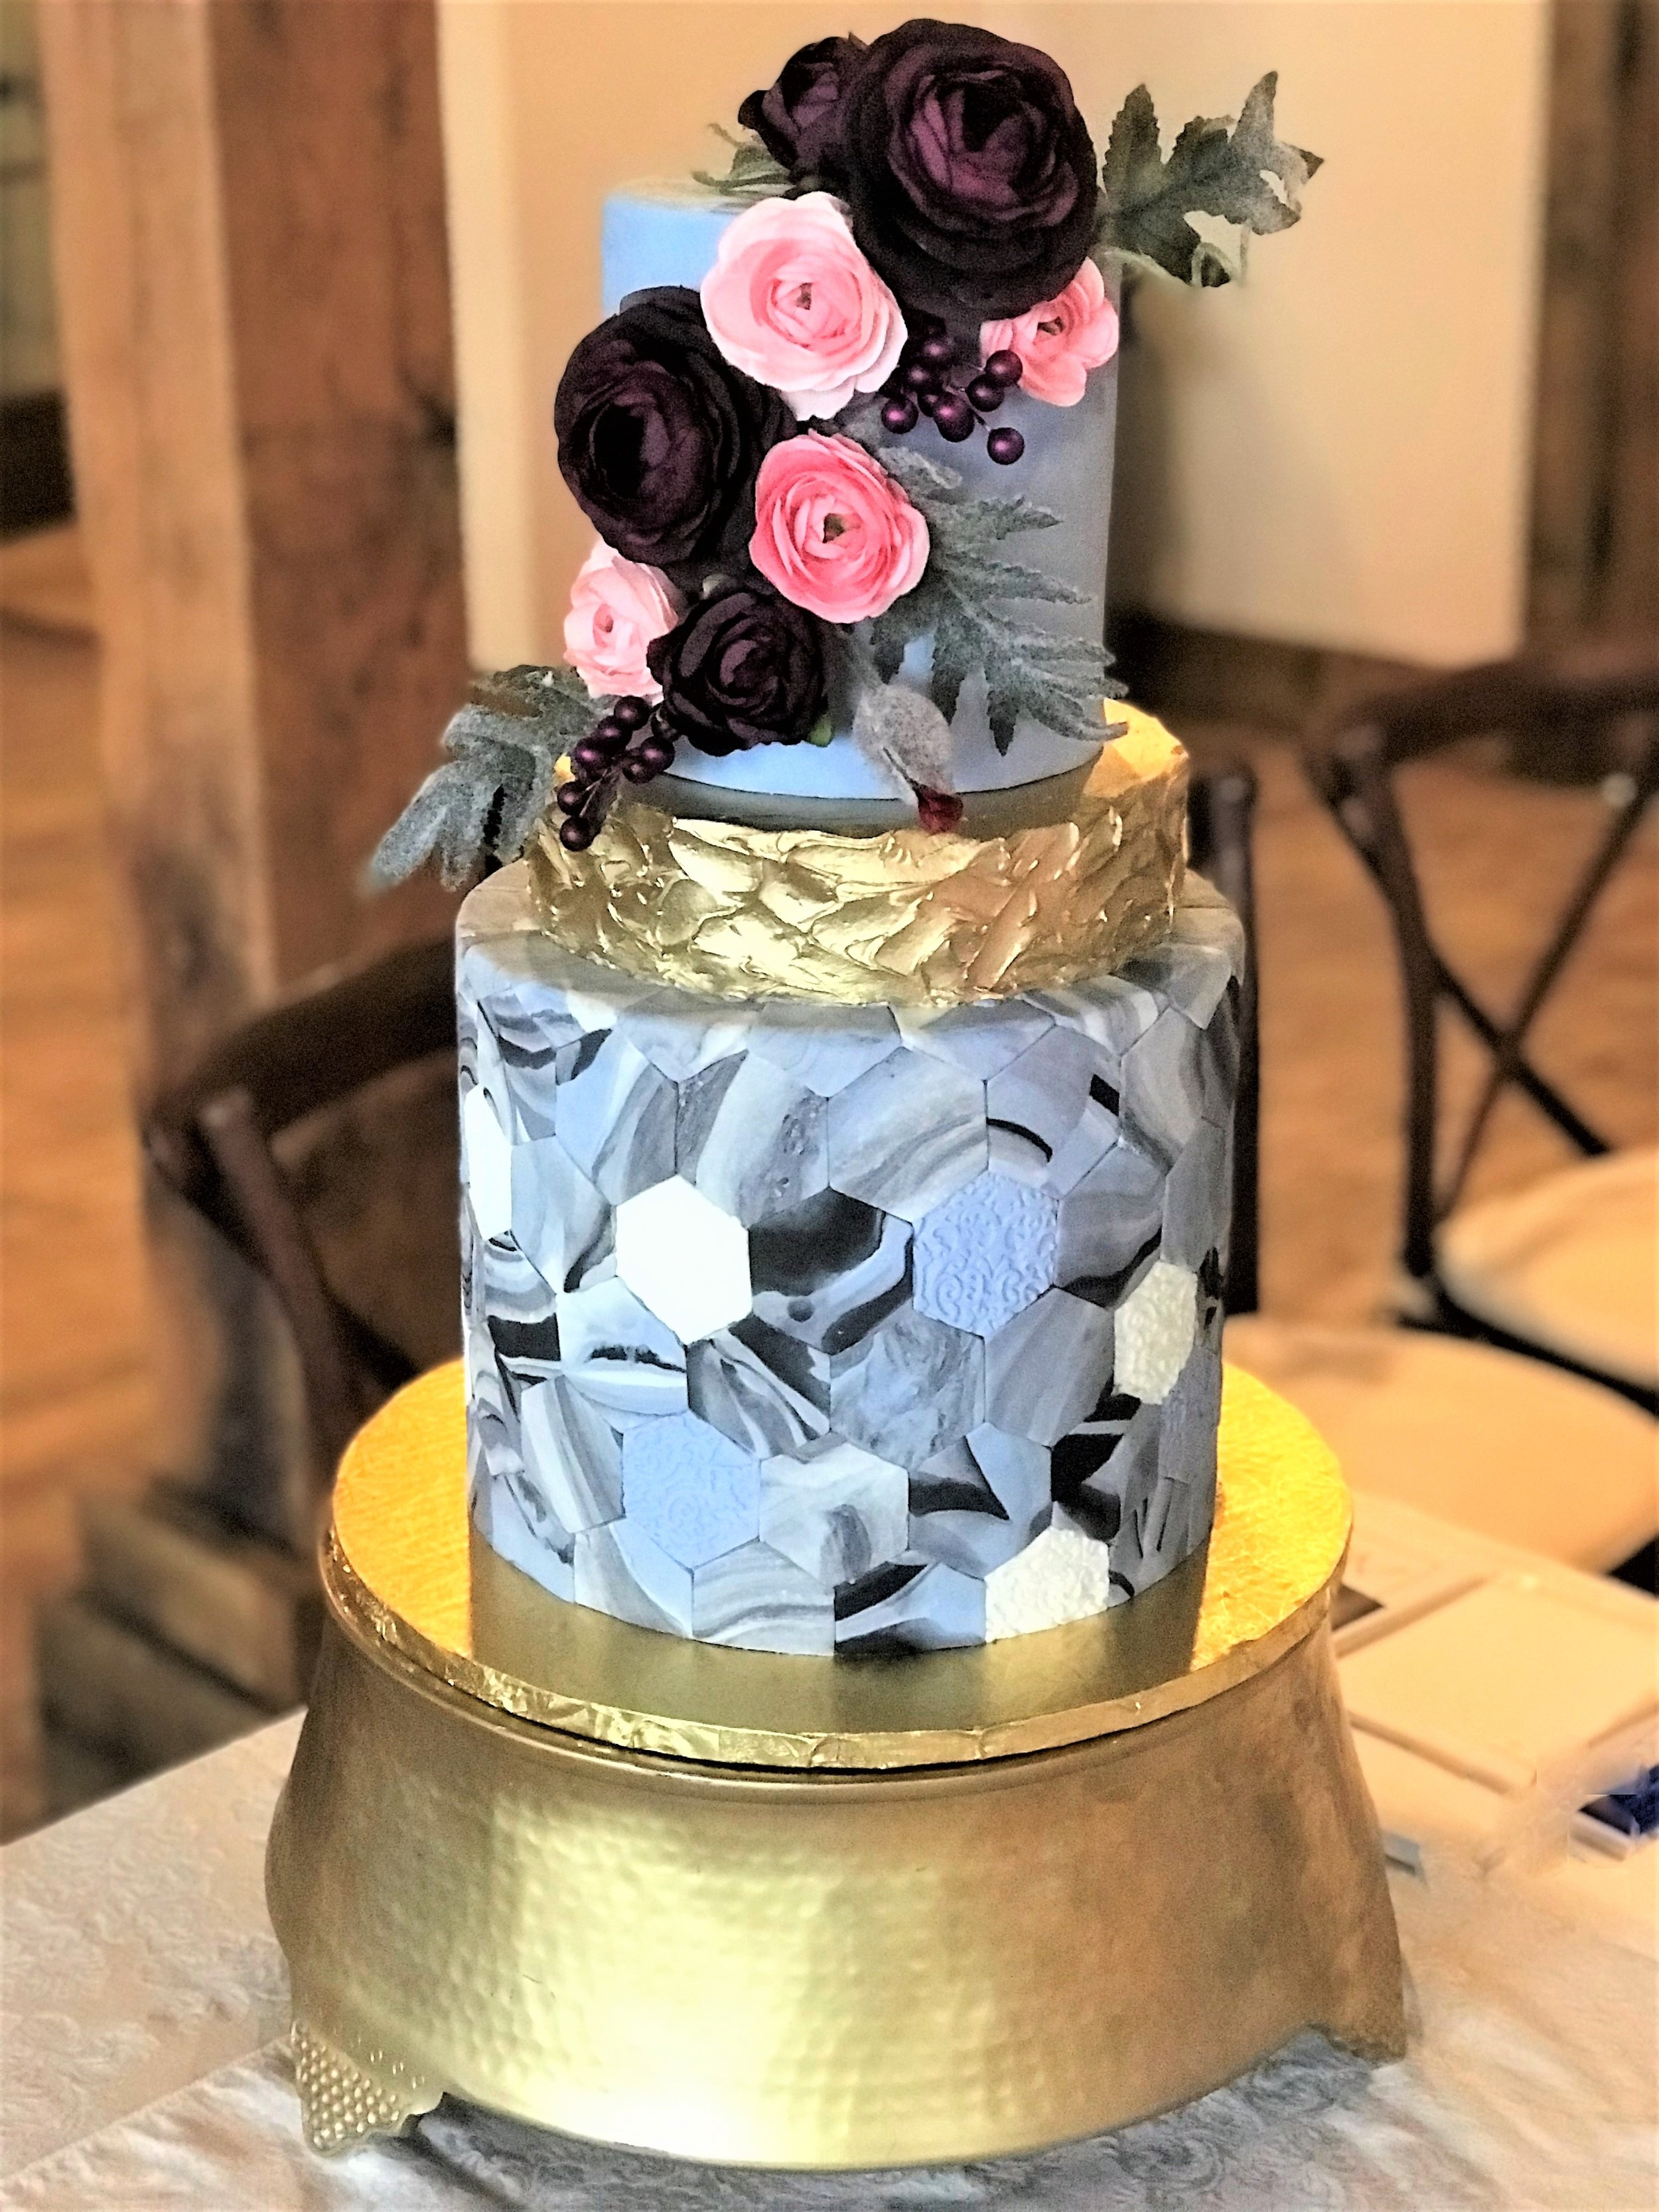 hexagon periwinkle wedding cake with gold middle tier.jpeg